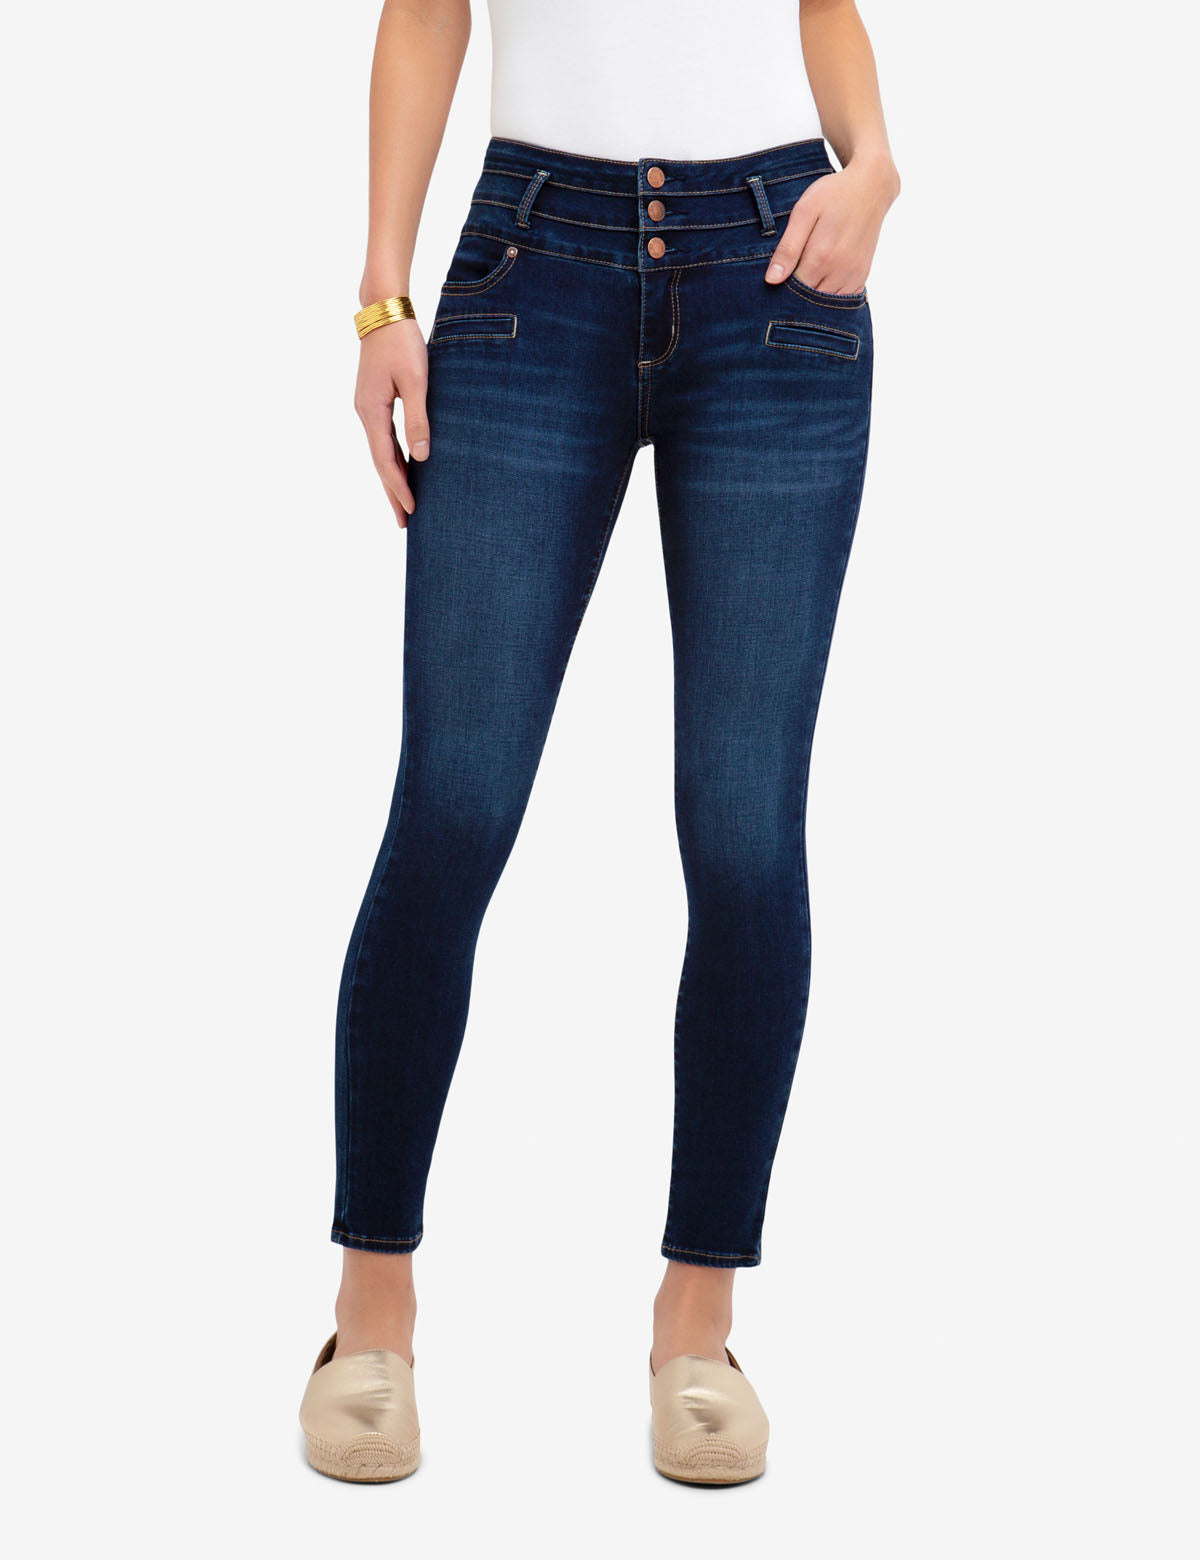 REPREVE® HIGH RISE STRETCH SUPER SKINNY JEANS